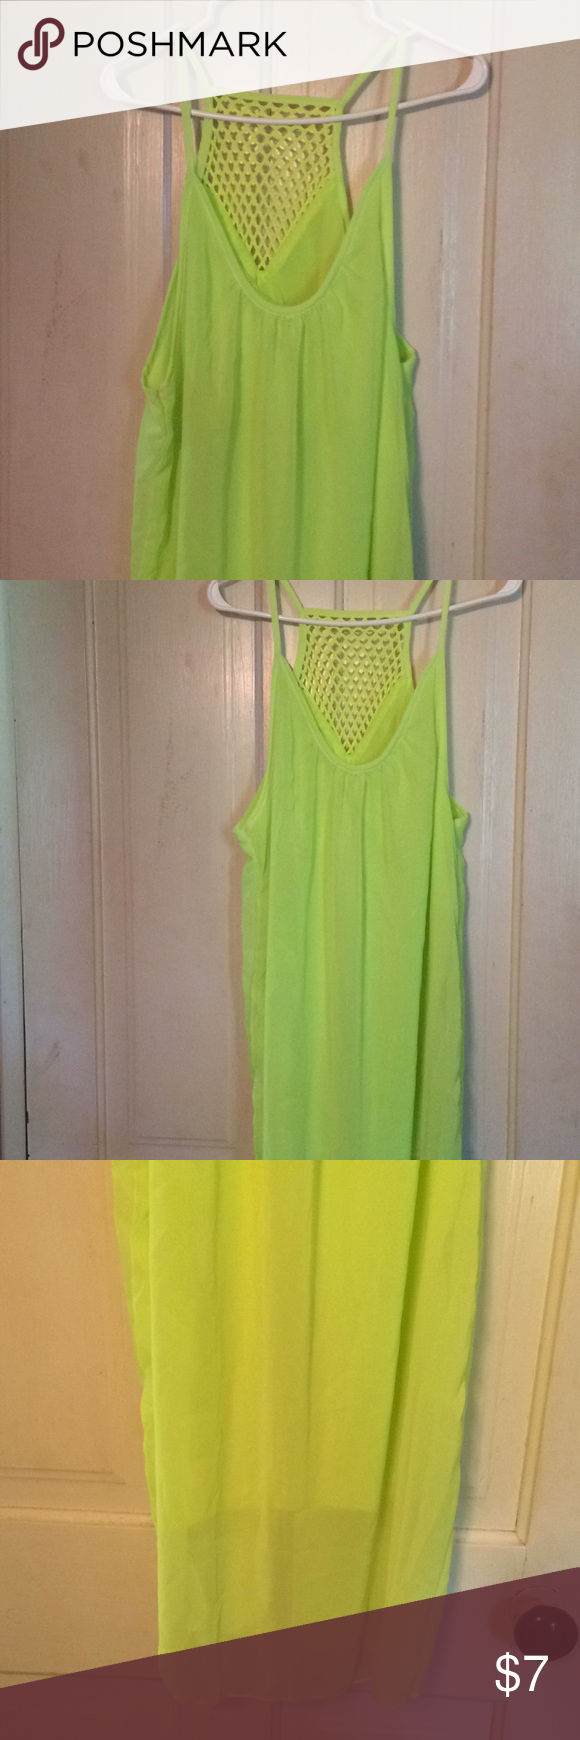 Large neon green dress NWT Neon green dresses Neon green and